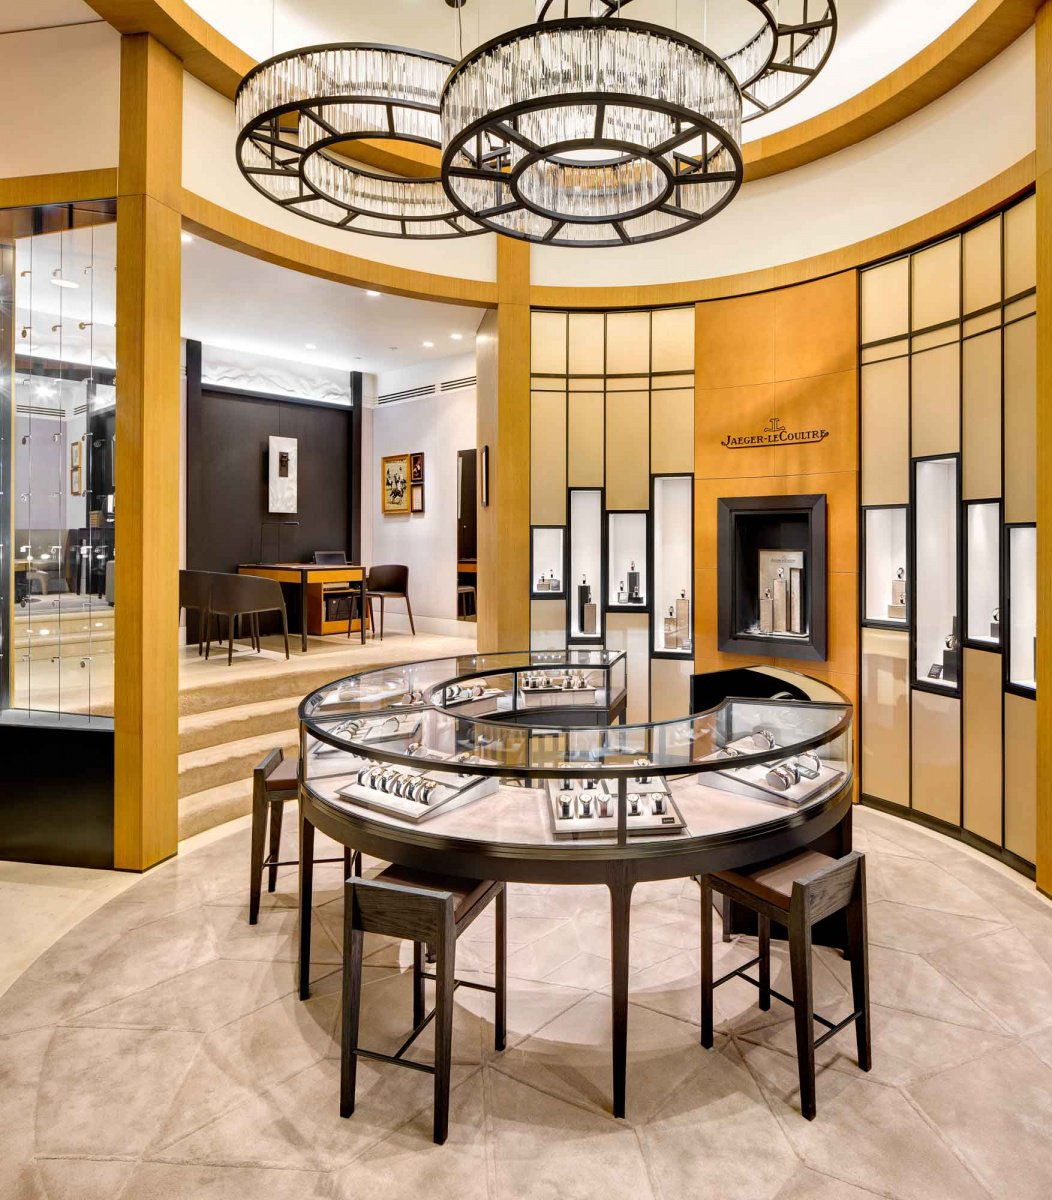 Jaeger-LeCoultre New York Boutique flagship